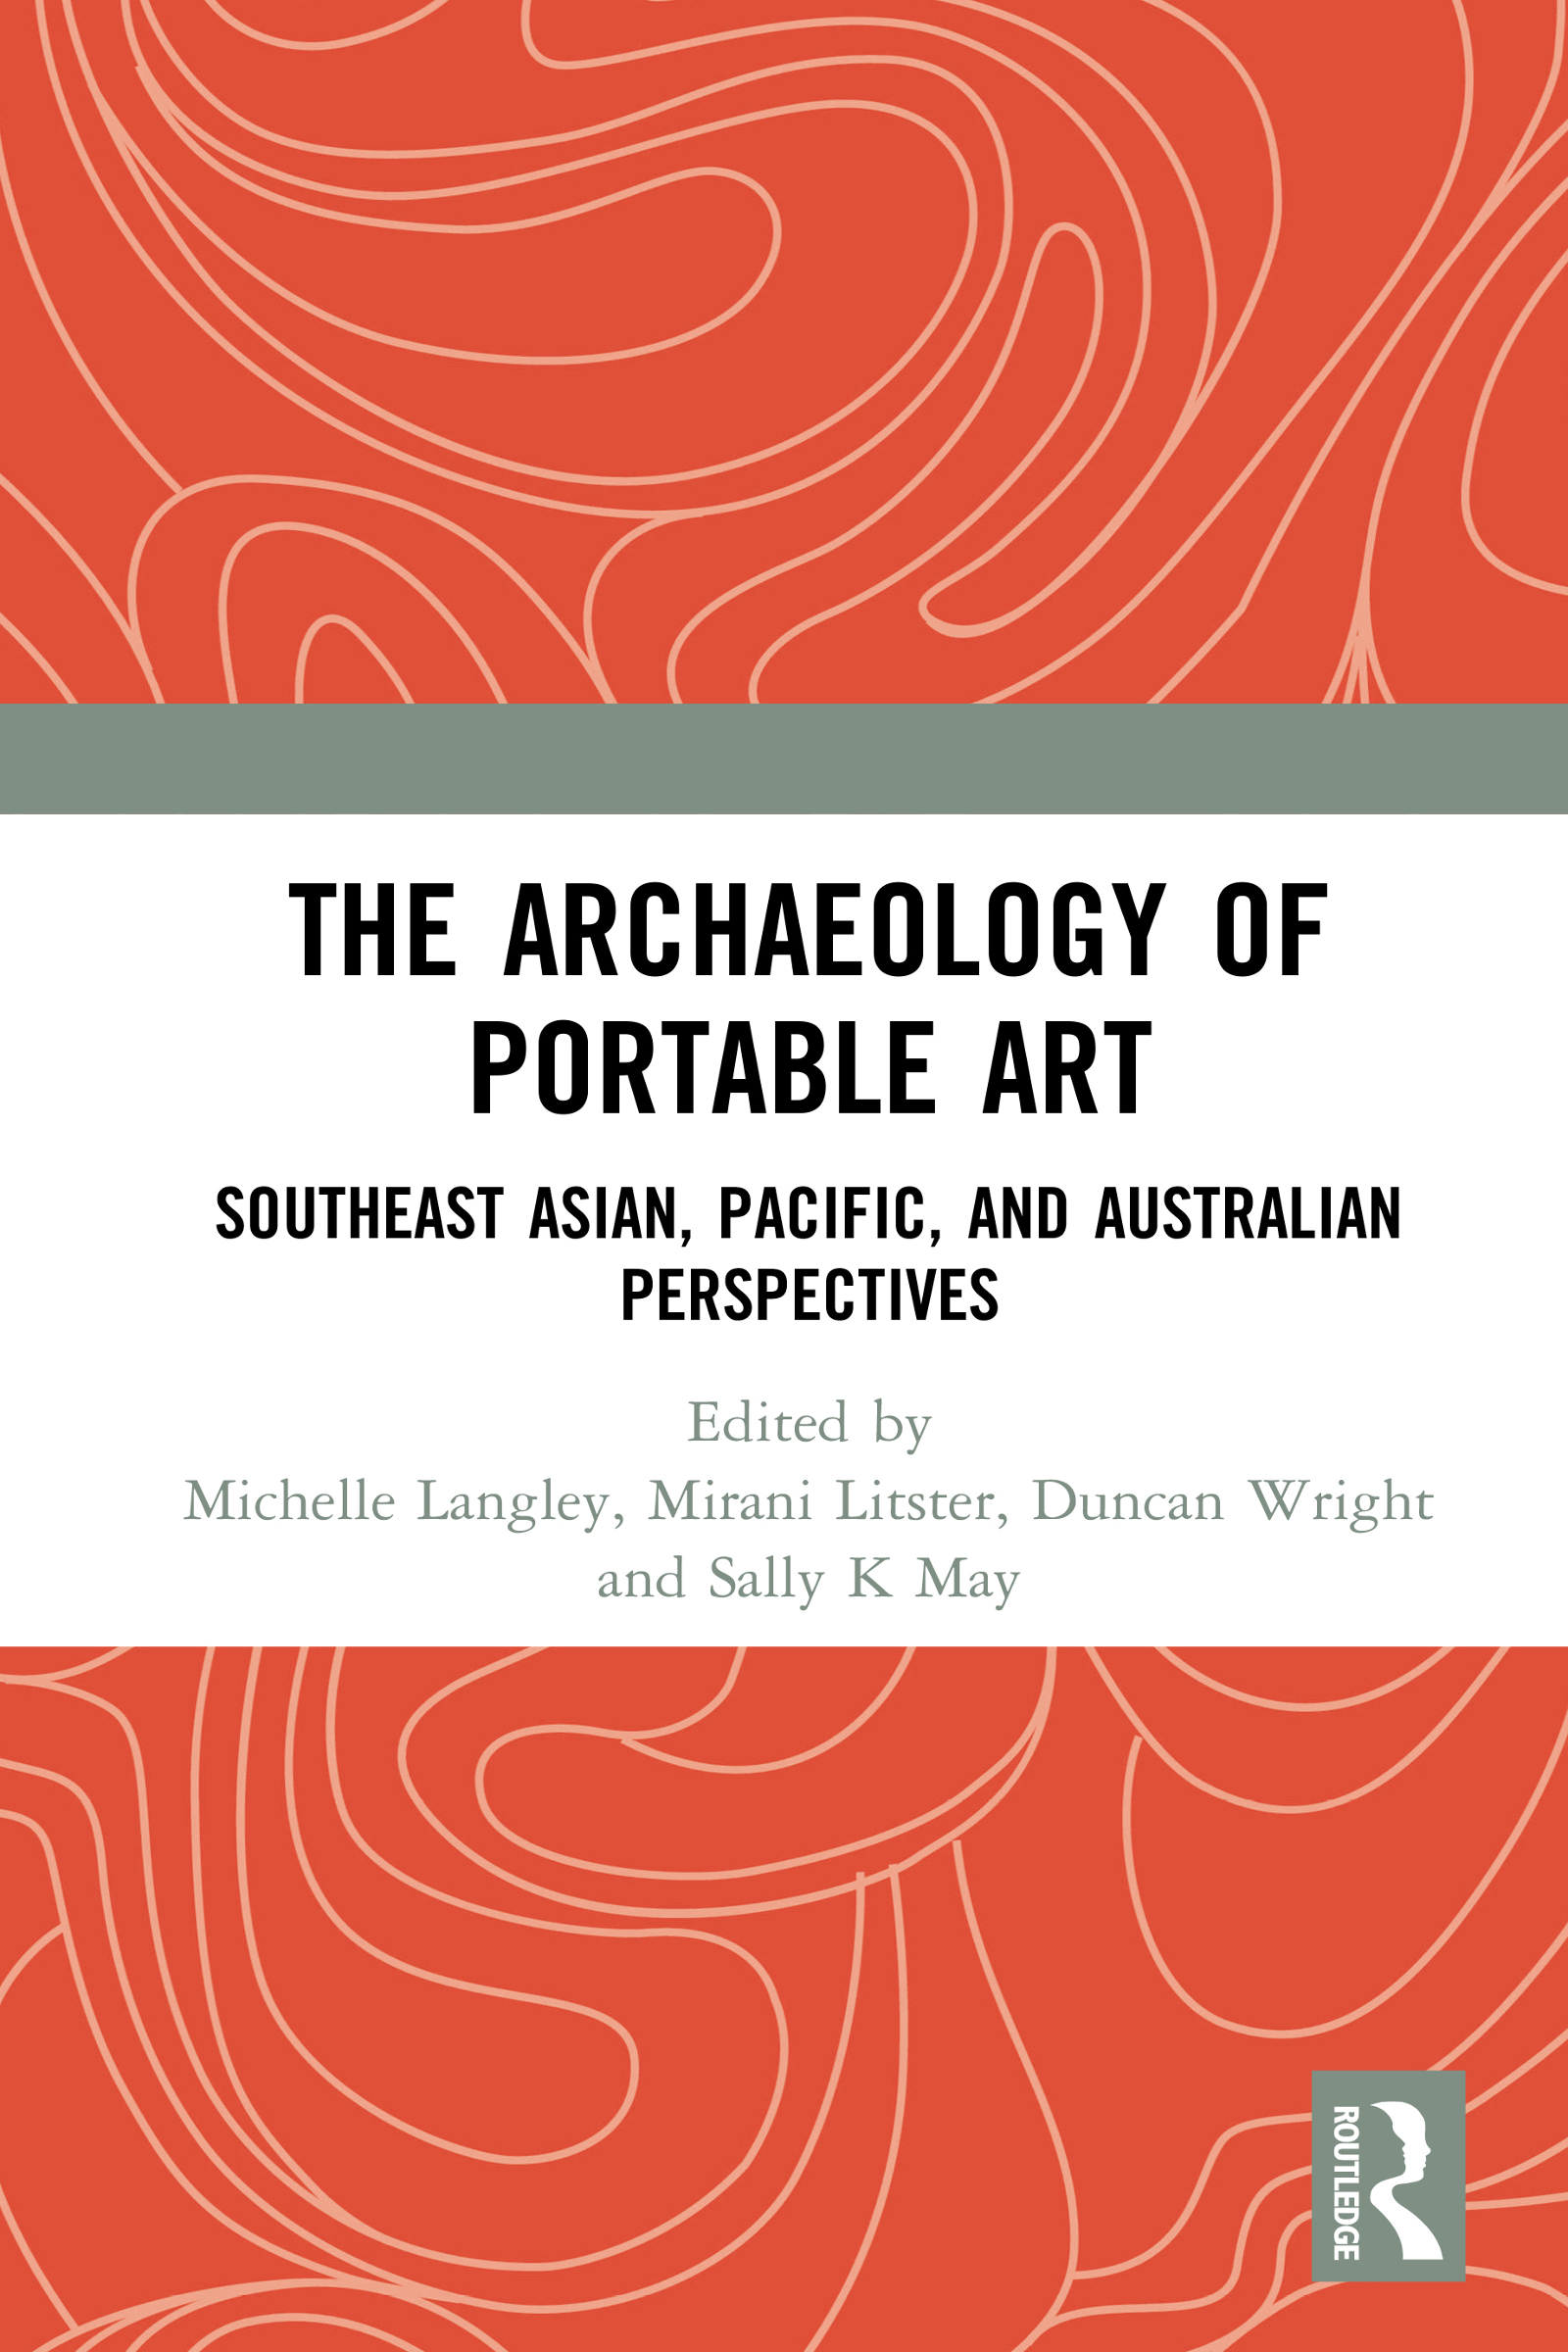 The Archaeology of Portable Art